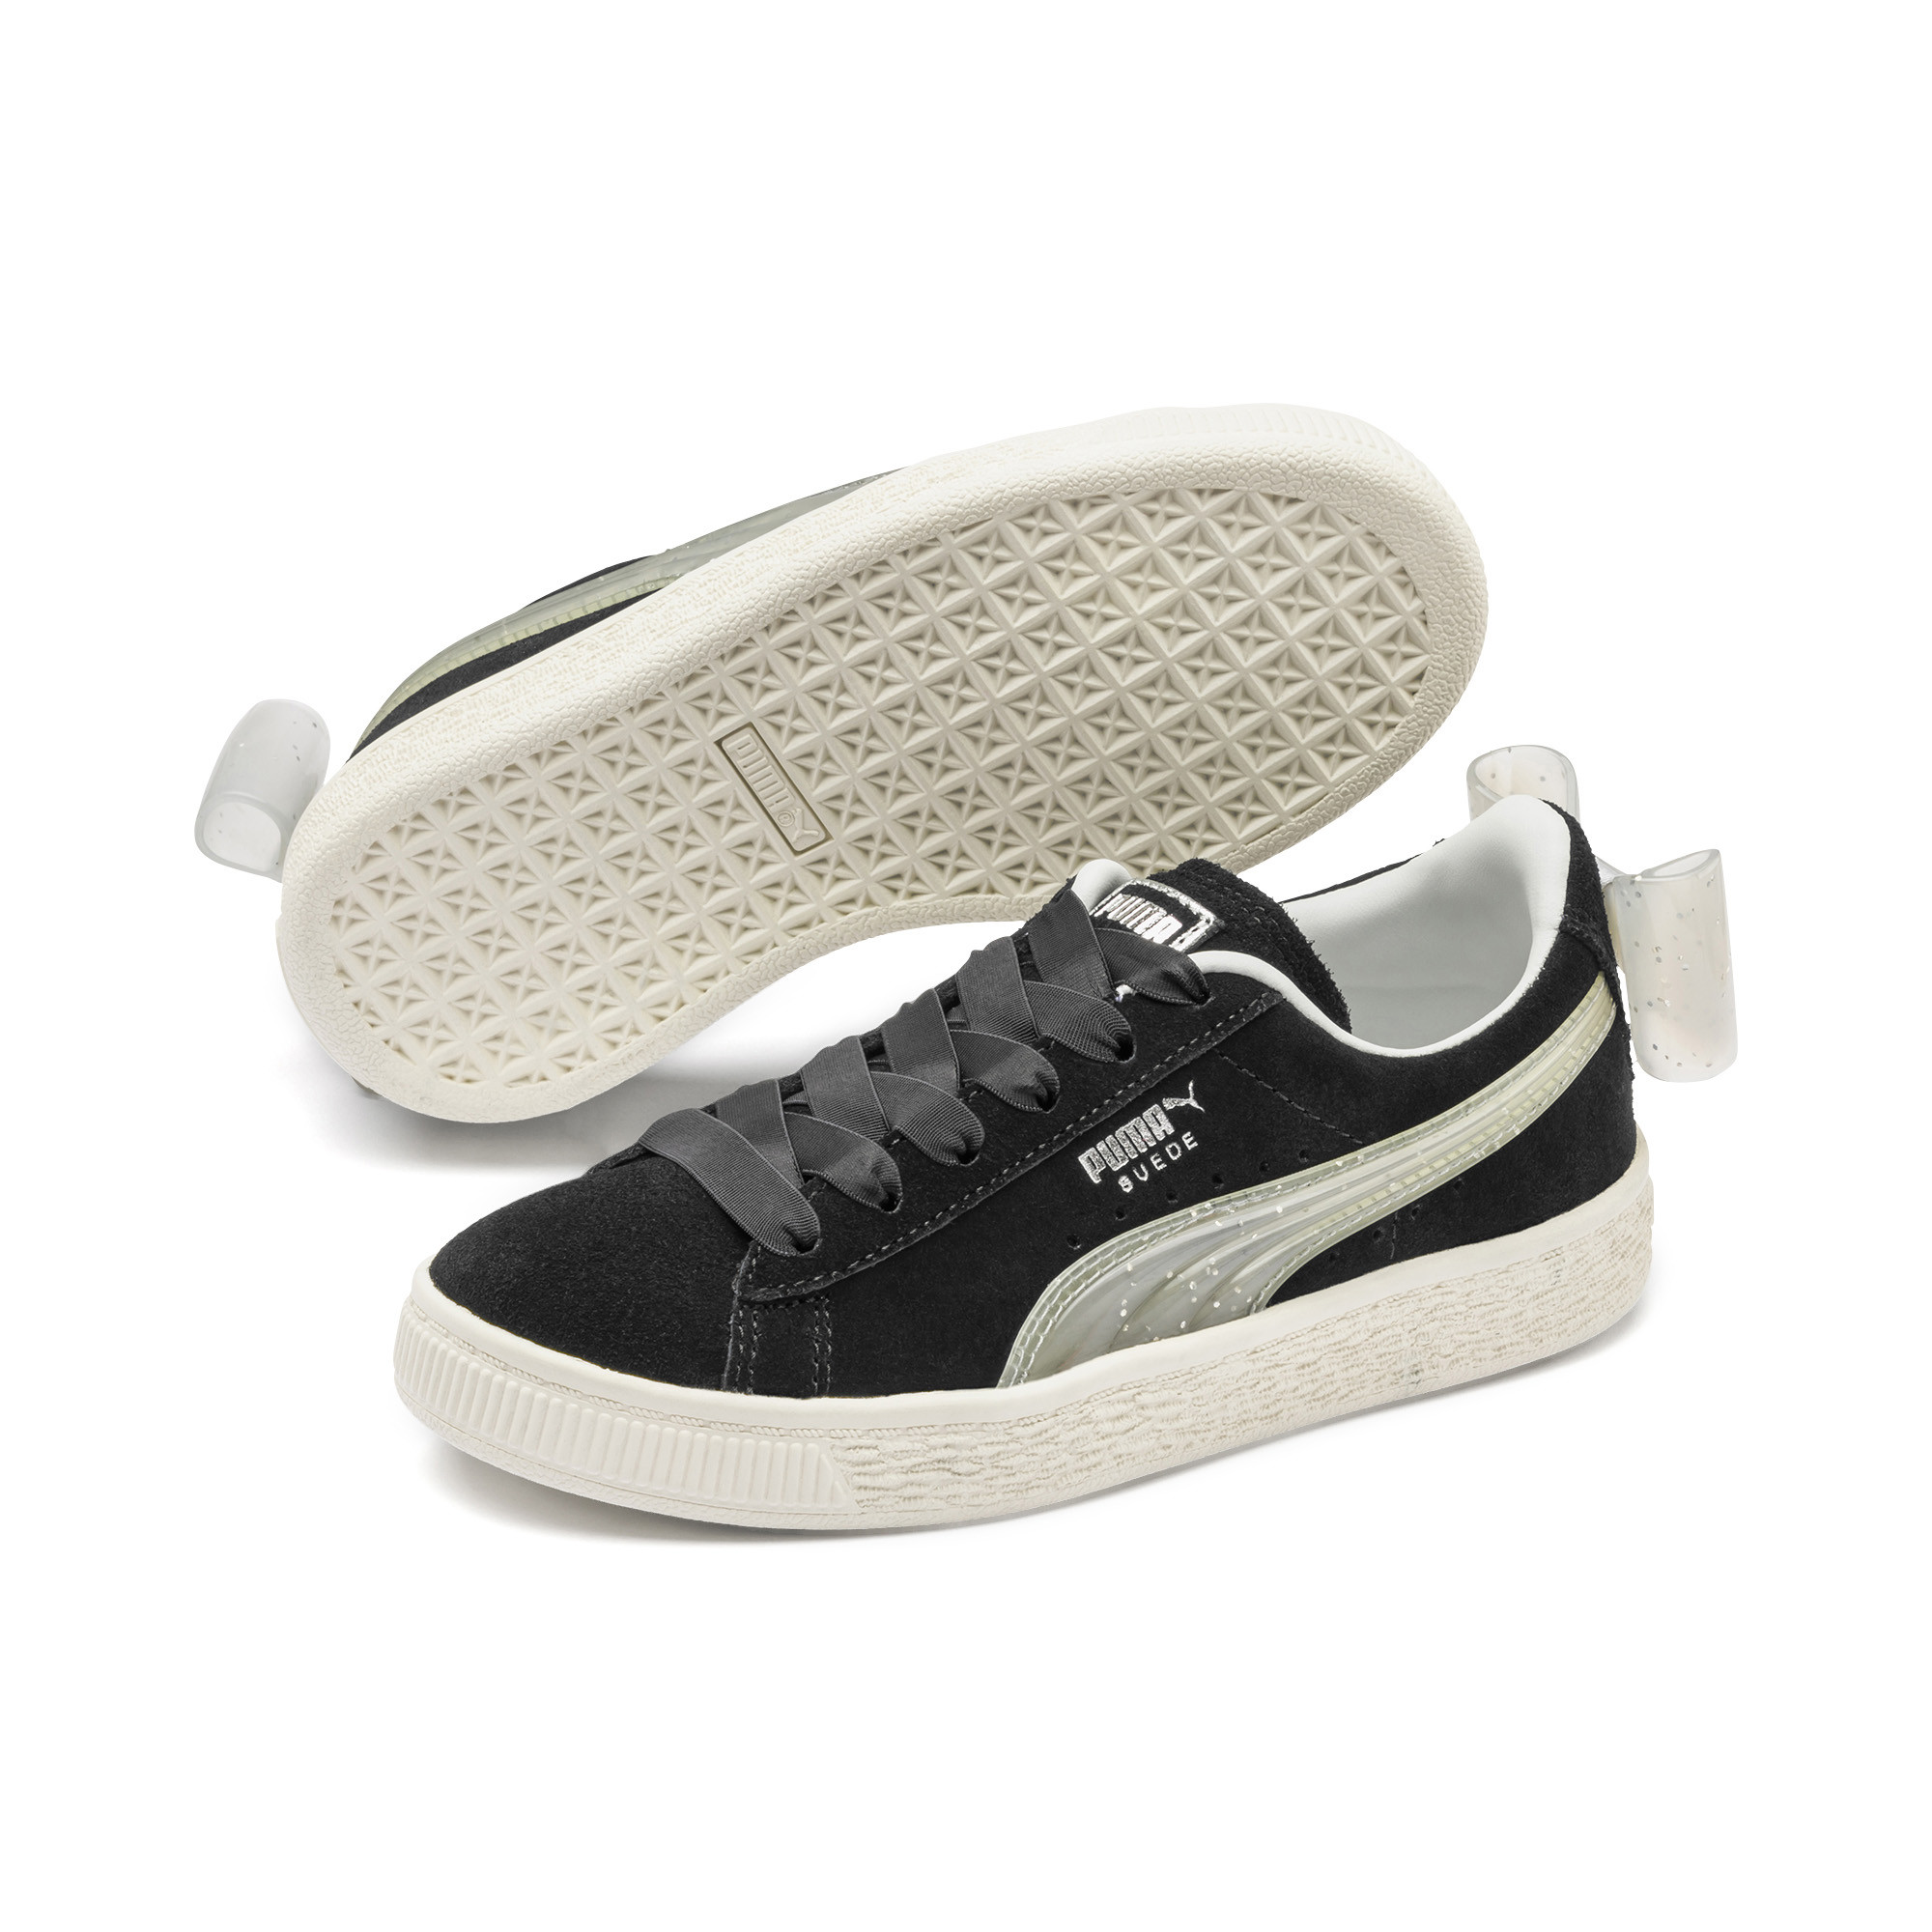 Details about PUMA Suede Jelly Bow AC Toddler Shoes Girls Shoe Kids